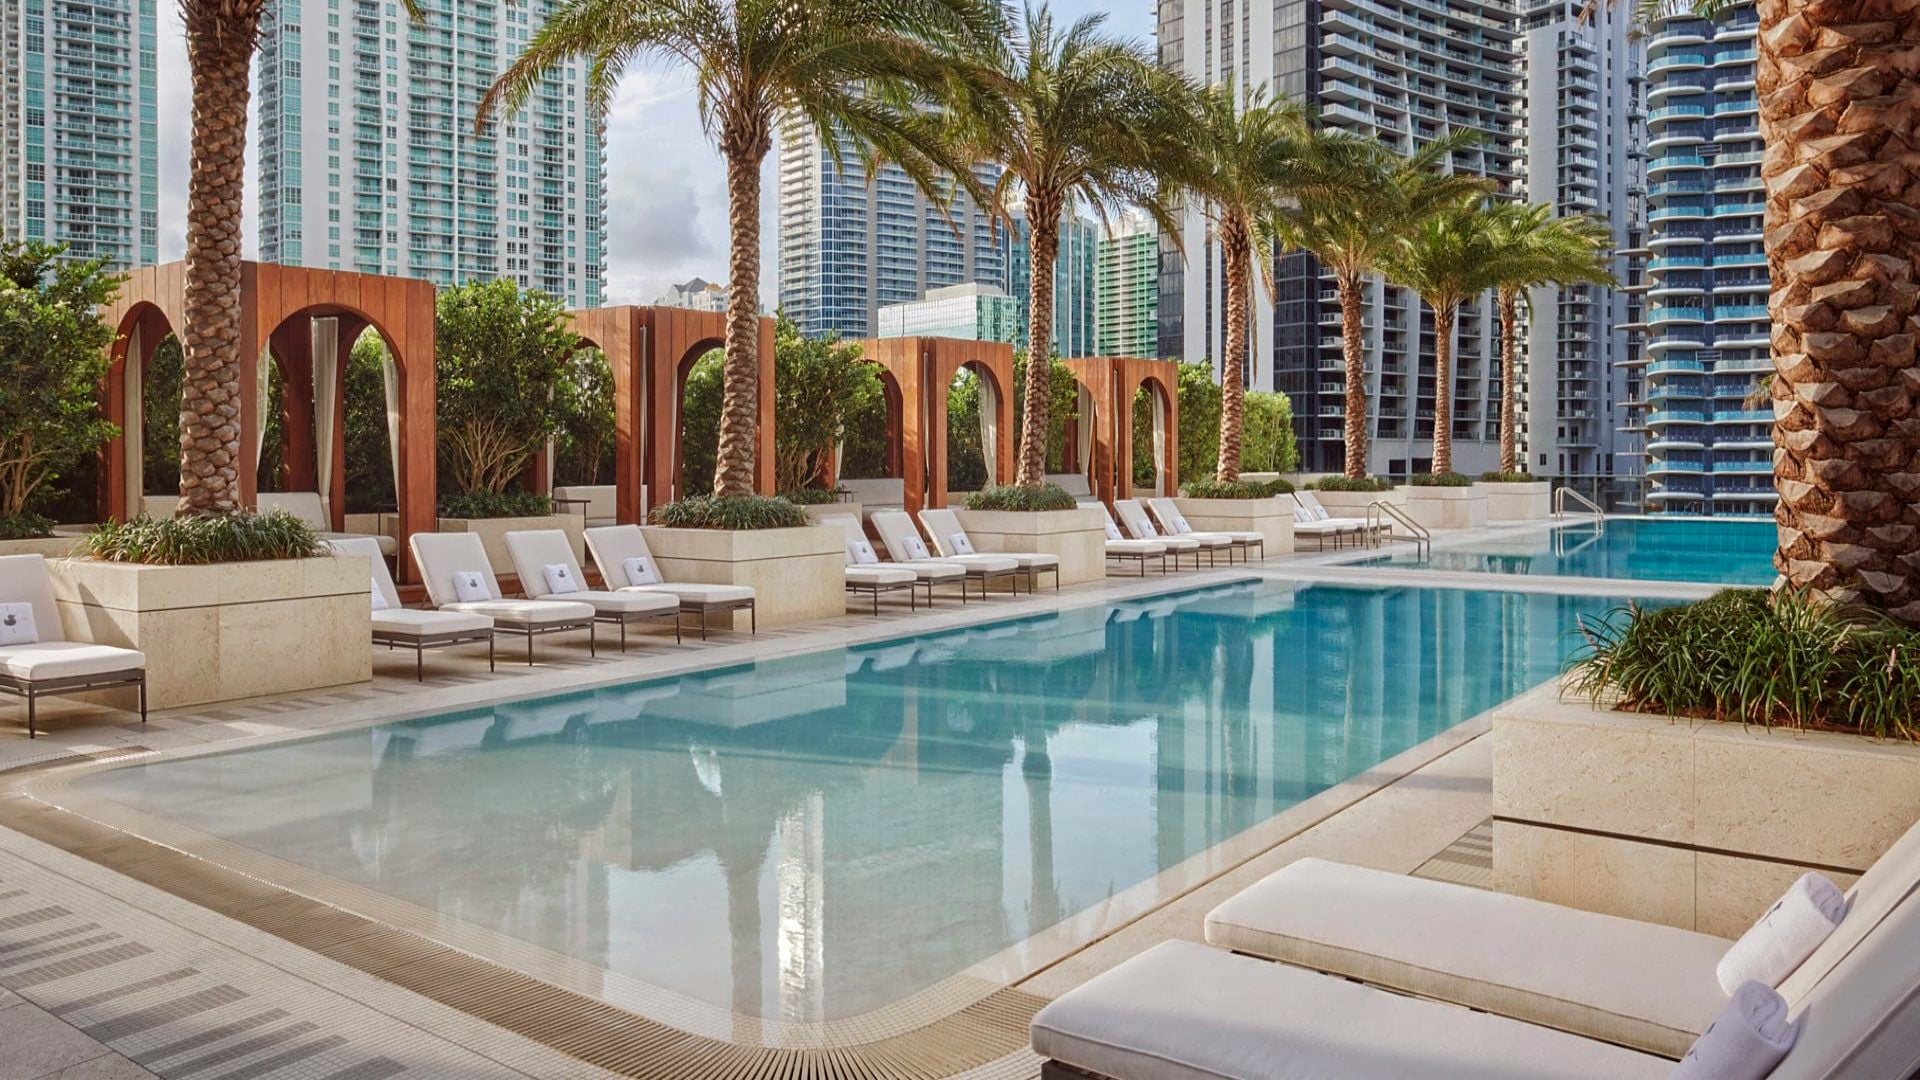 Feel At Home On Vacation At This Luxe New Miami Hotel (Where The Suites Have Everything You Need)